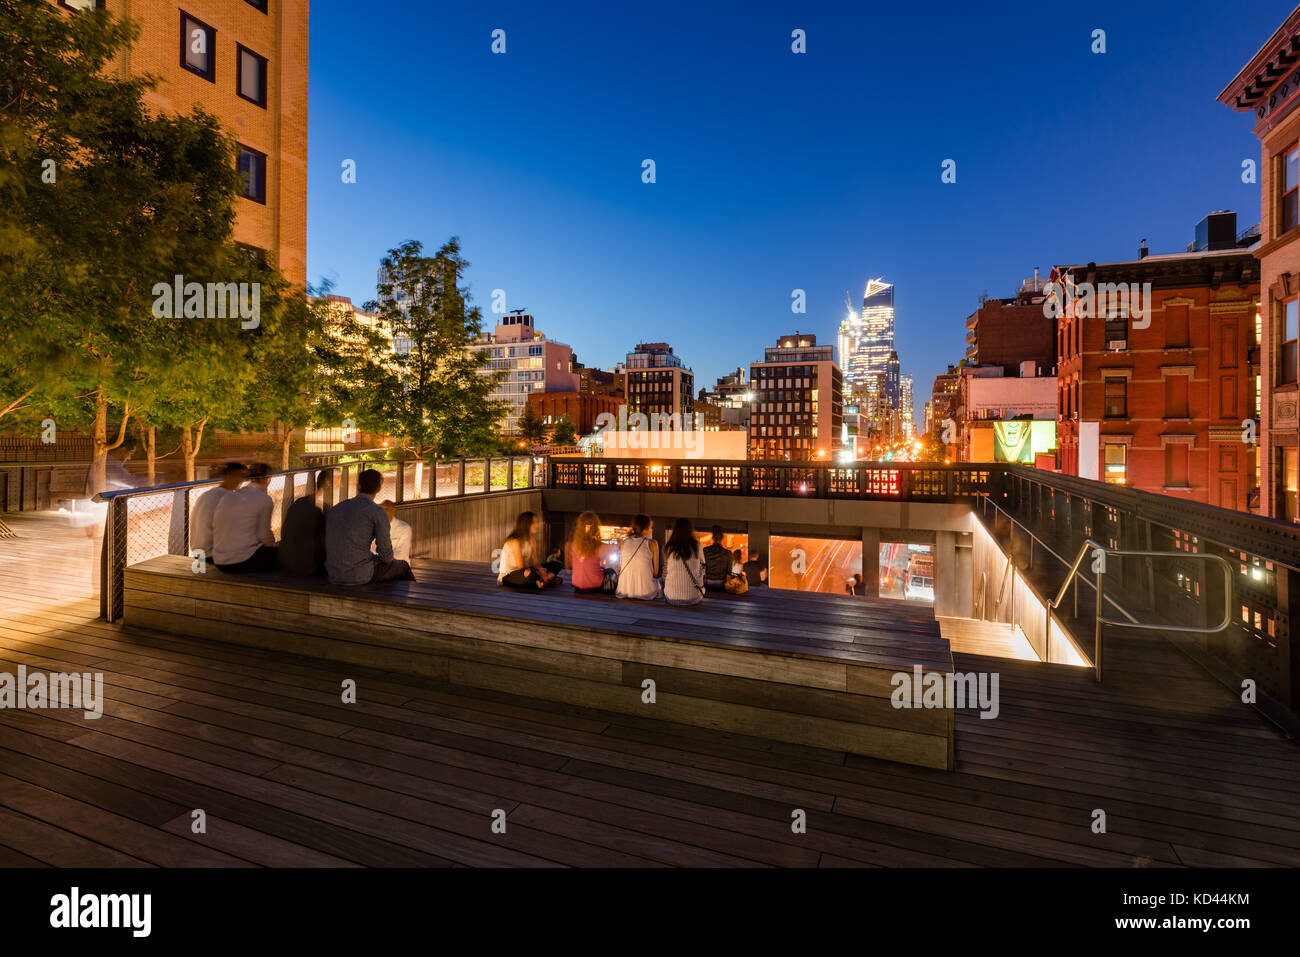 A summer evening at the Highline (High Line Park). 10th Avenue, Chelsea, Manhattan, New York City - Stock Image